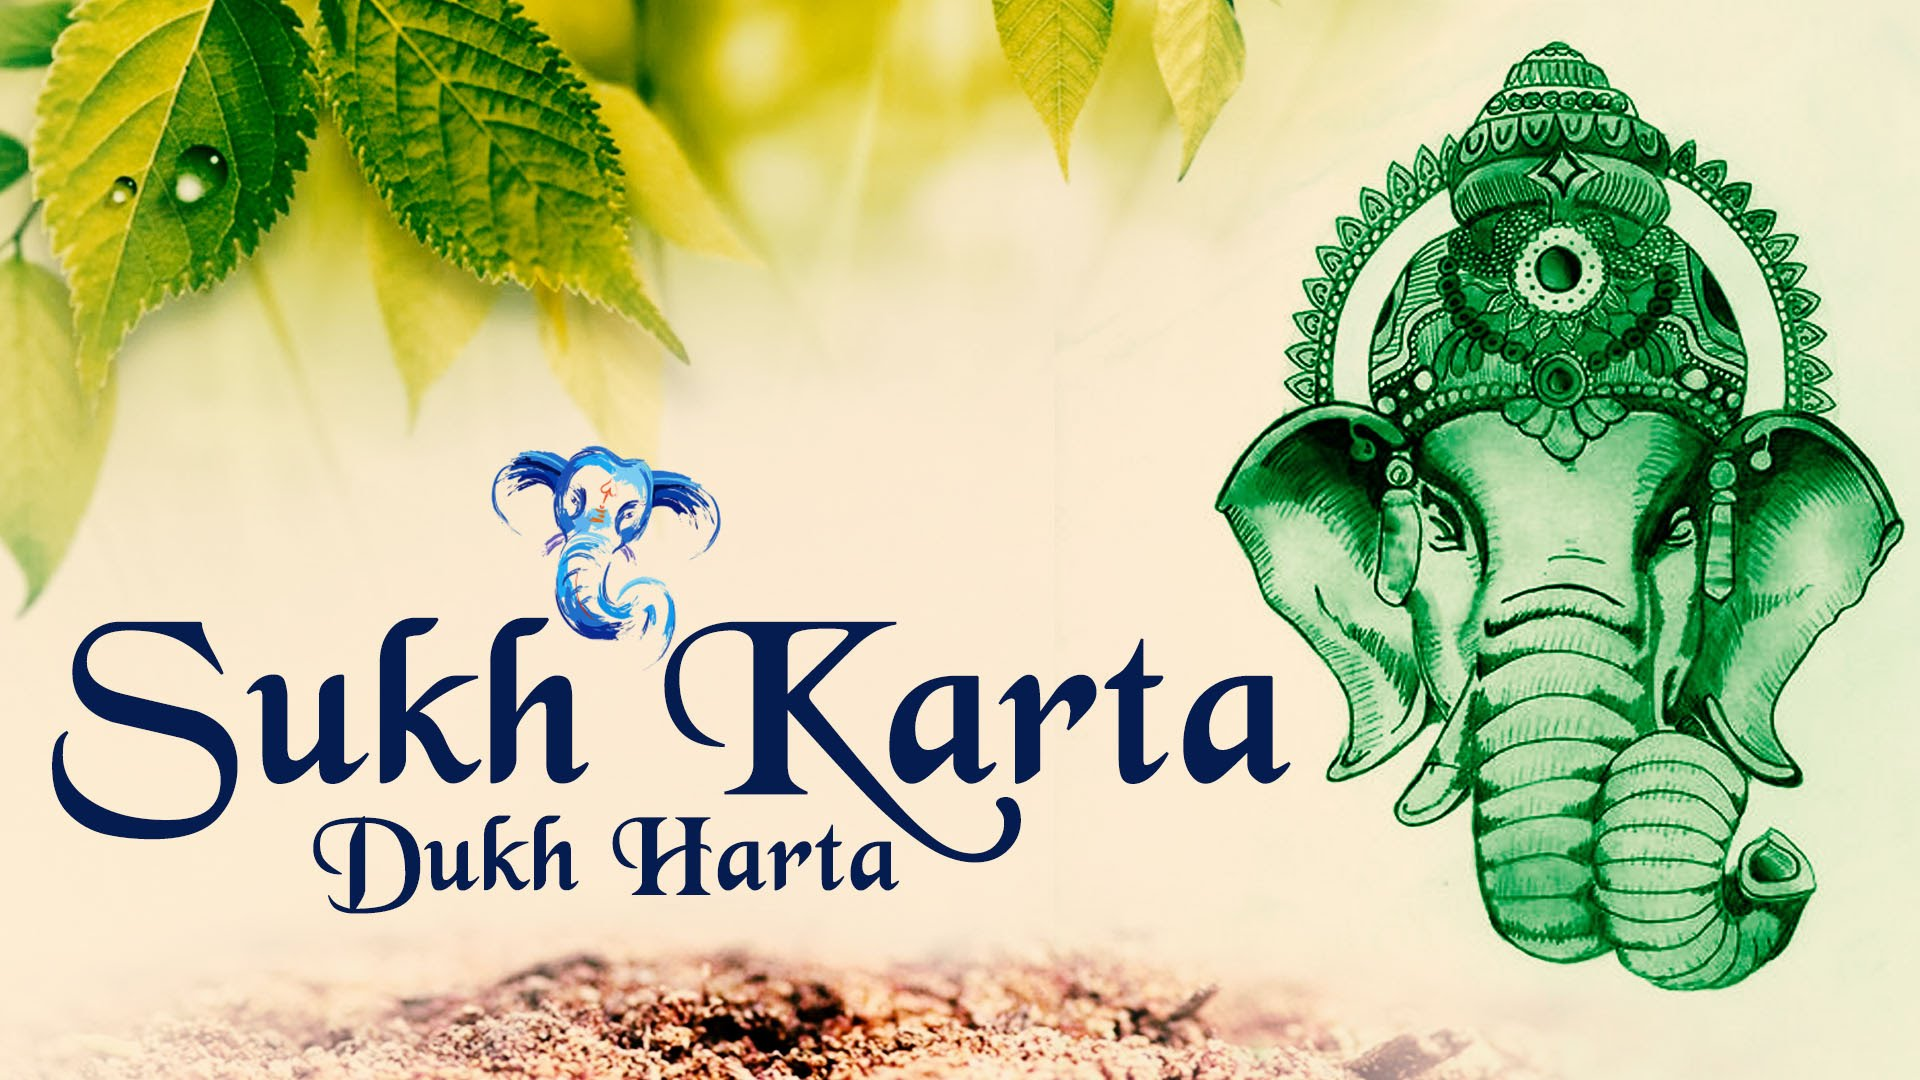 Photo of Sukh Karta Dukh Harta Mp3 Download Pagalworld in HD For Free